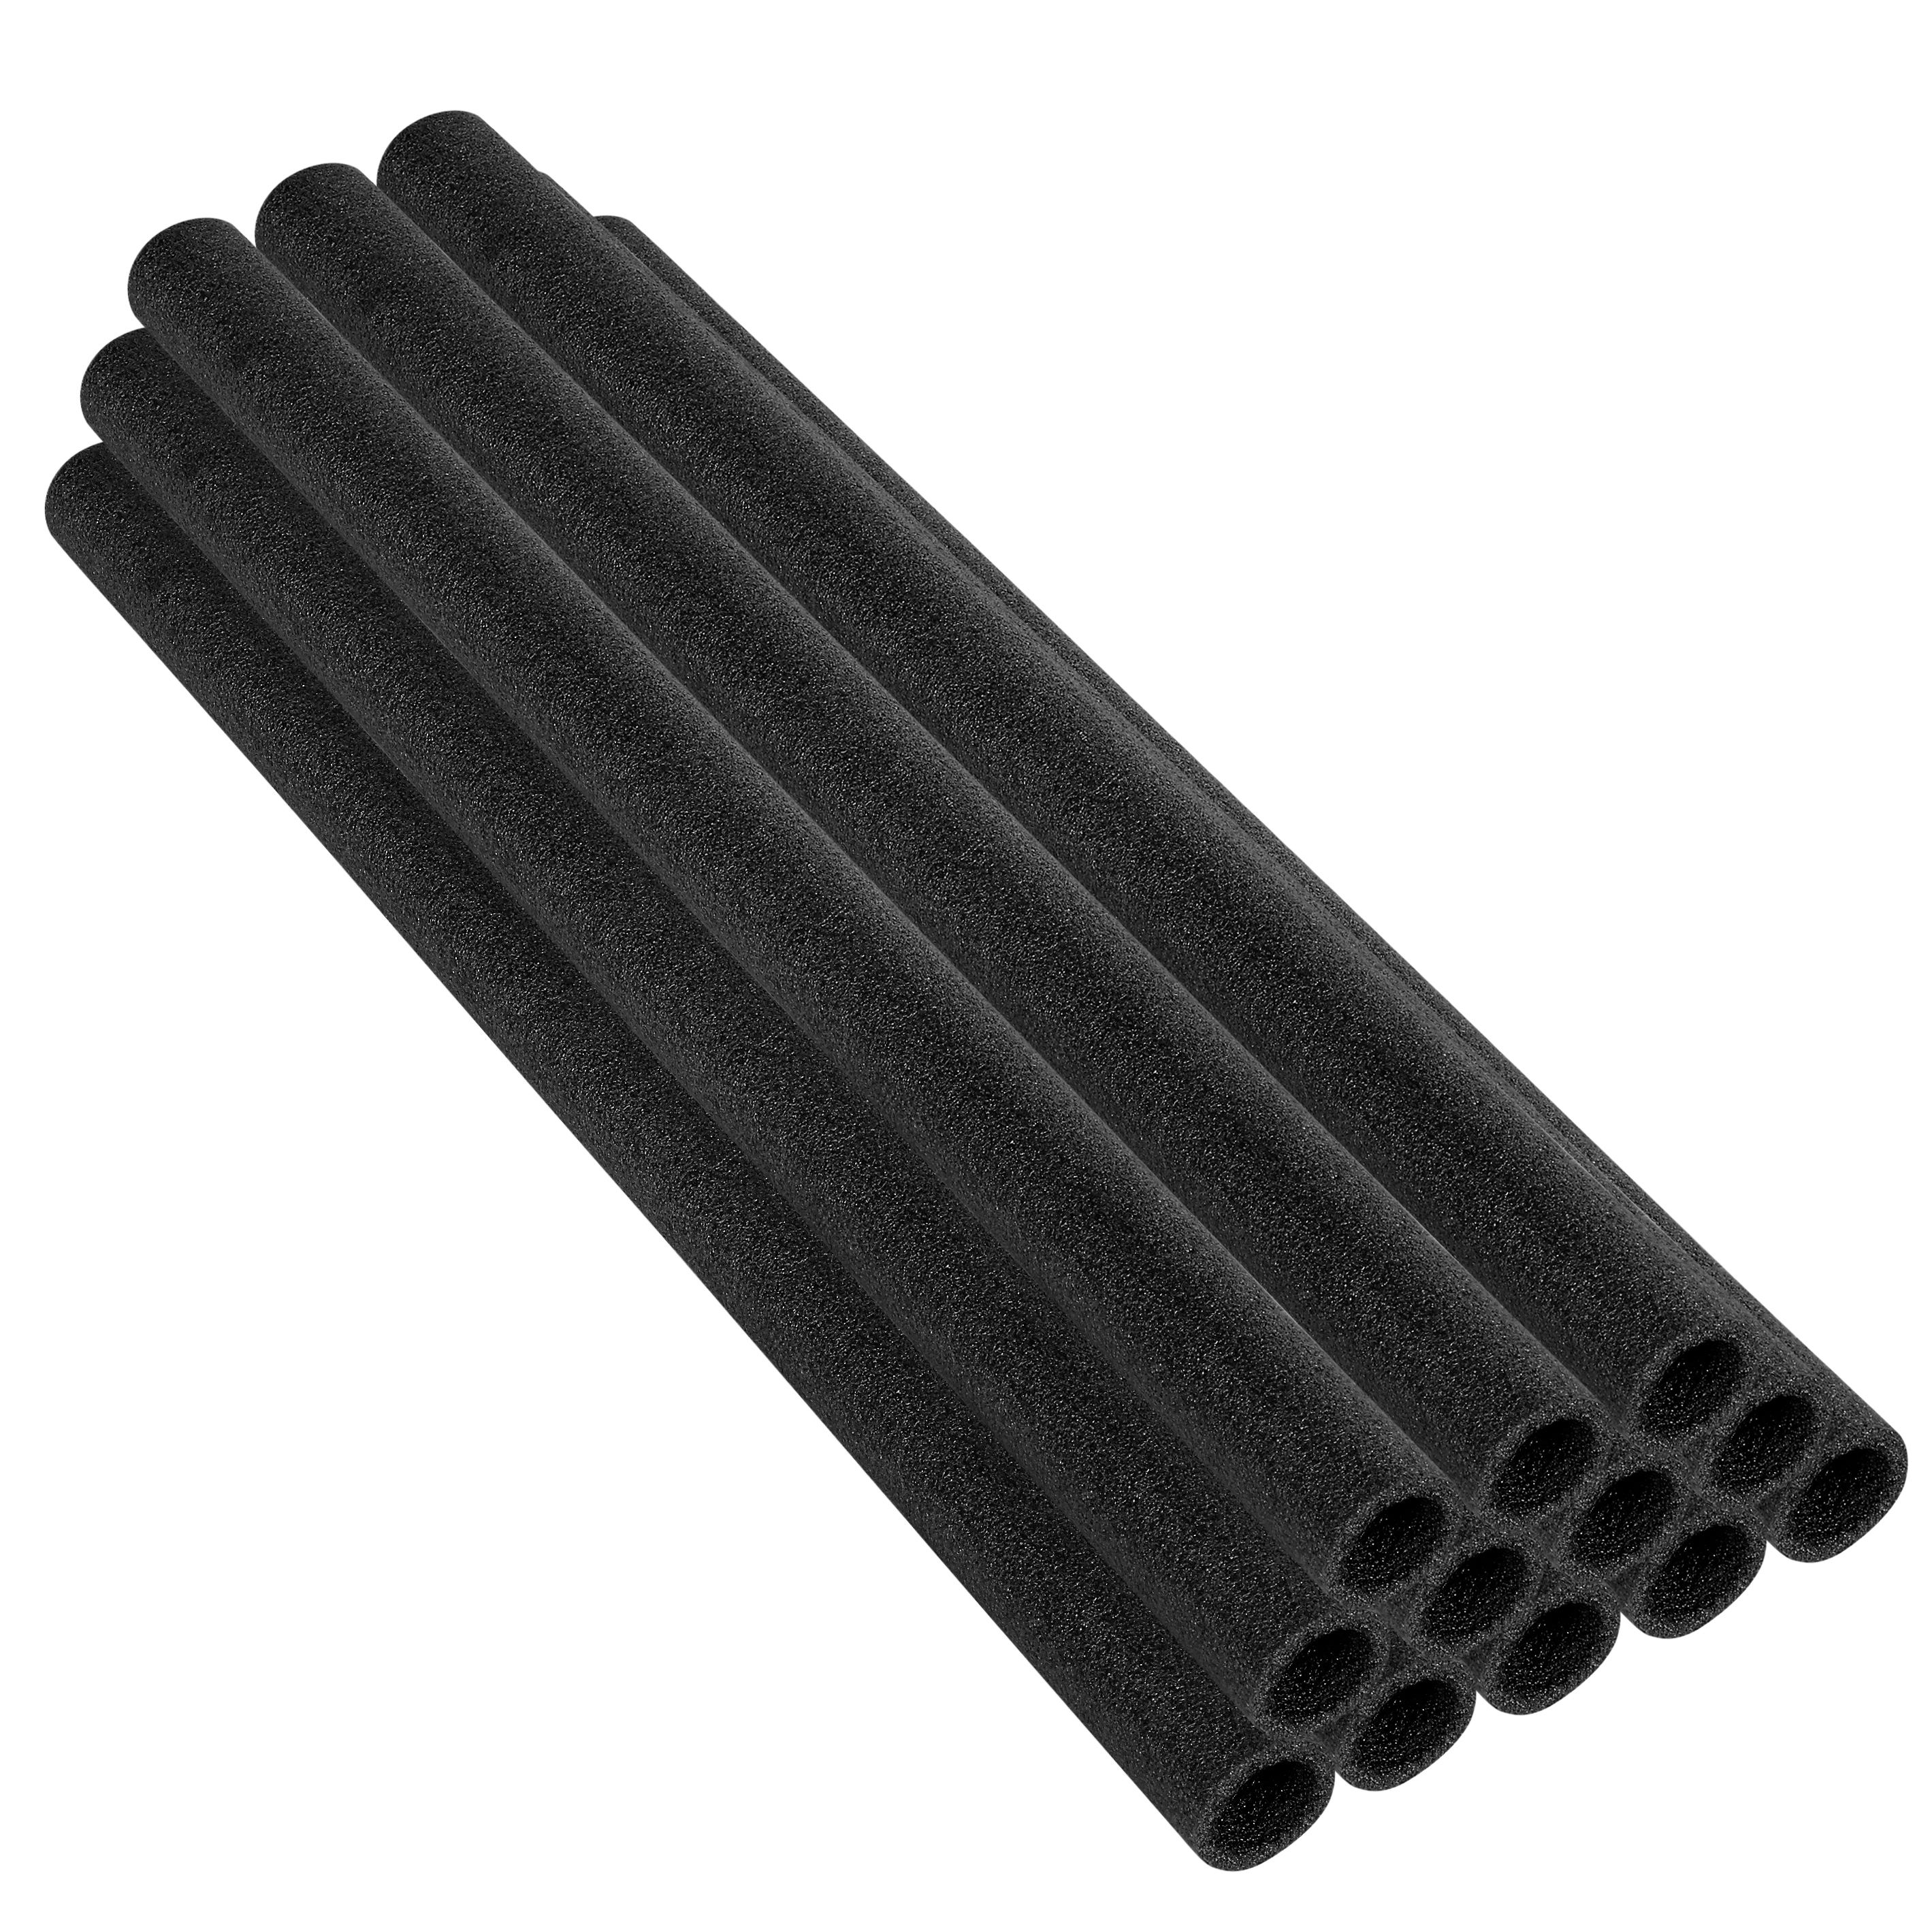 "Trampoline Pole Foam sleeves, fits for 1"" Diameter Pole - Set of 12"